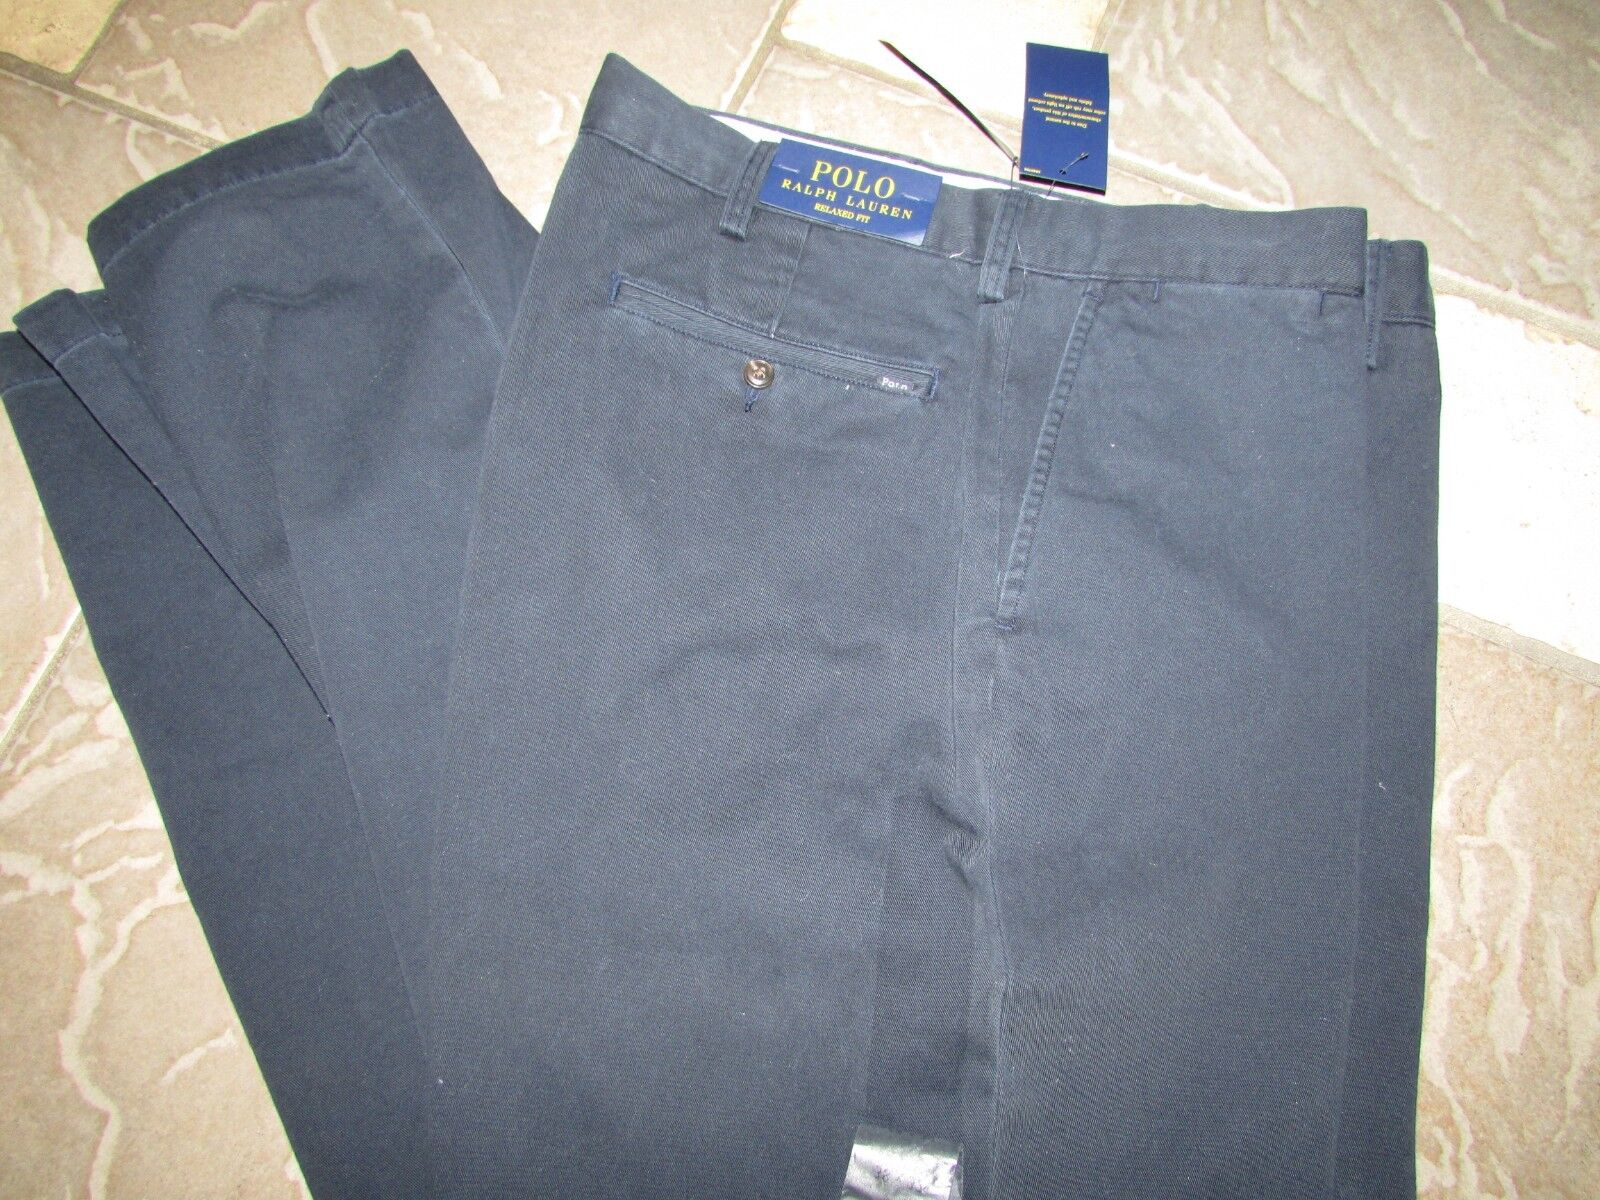 NEW POLO RALPH LAUREN NAVY RELAXED FIT PANTS MENS 32X32 FLAT FRONT COTTON